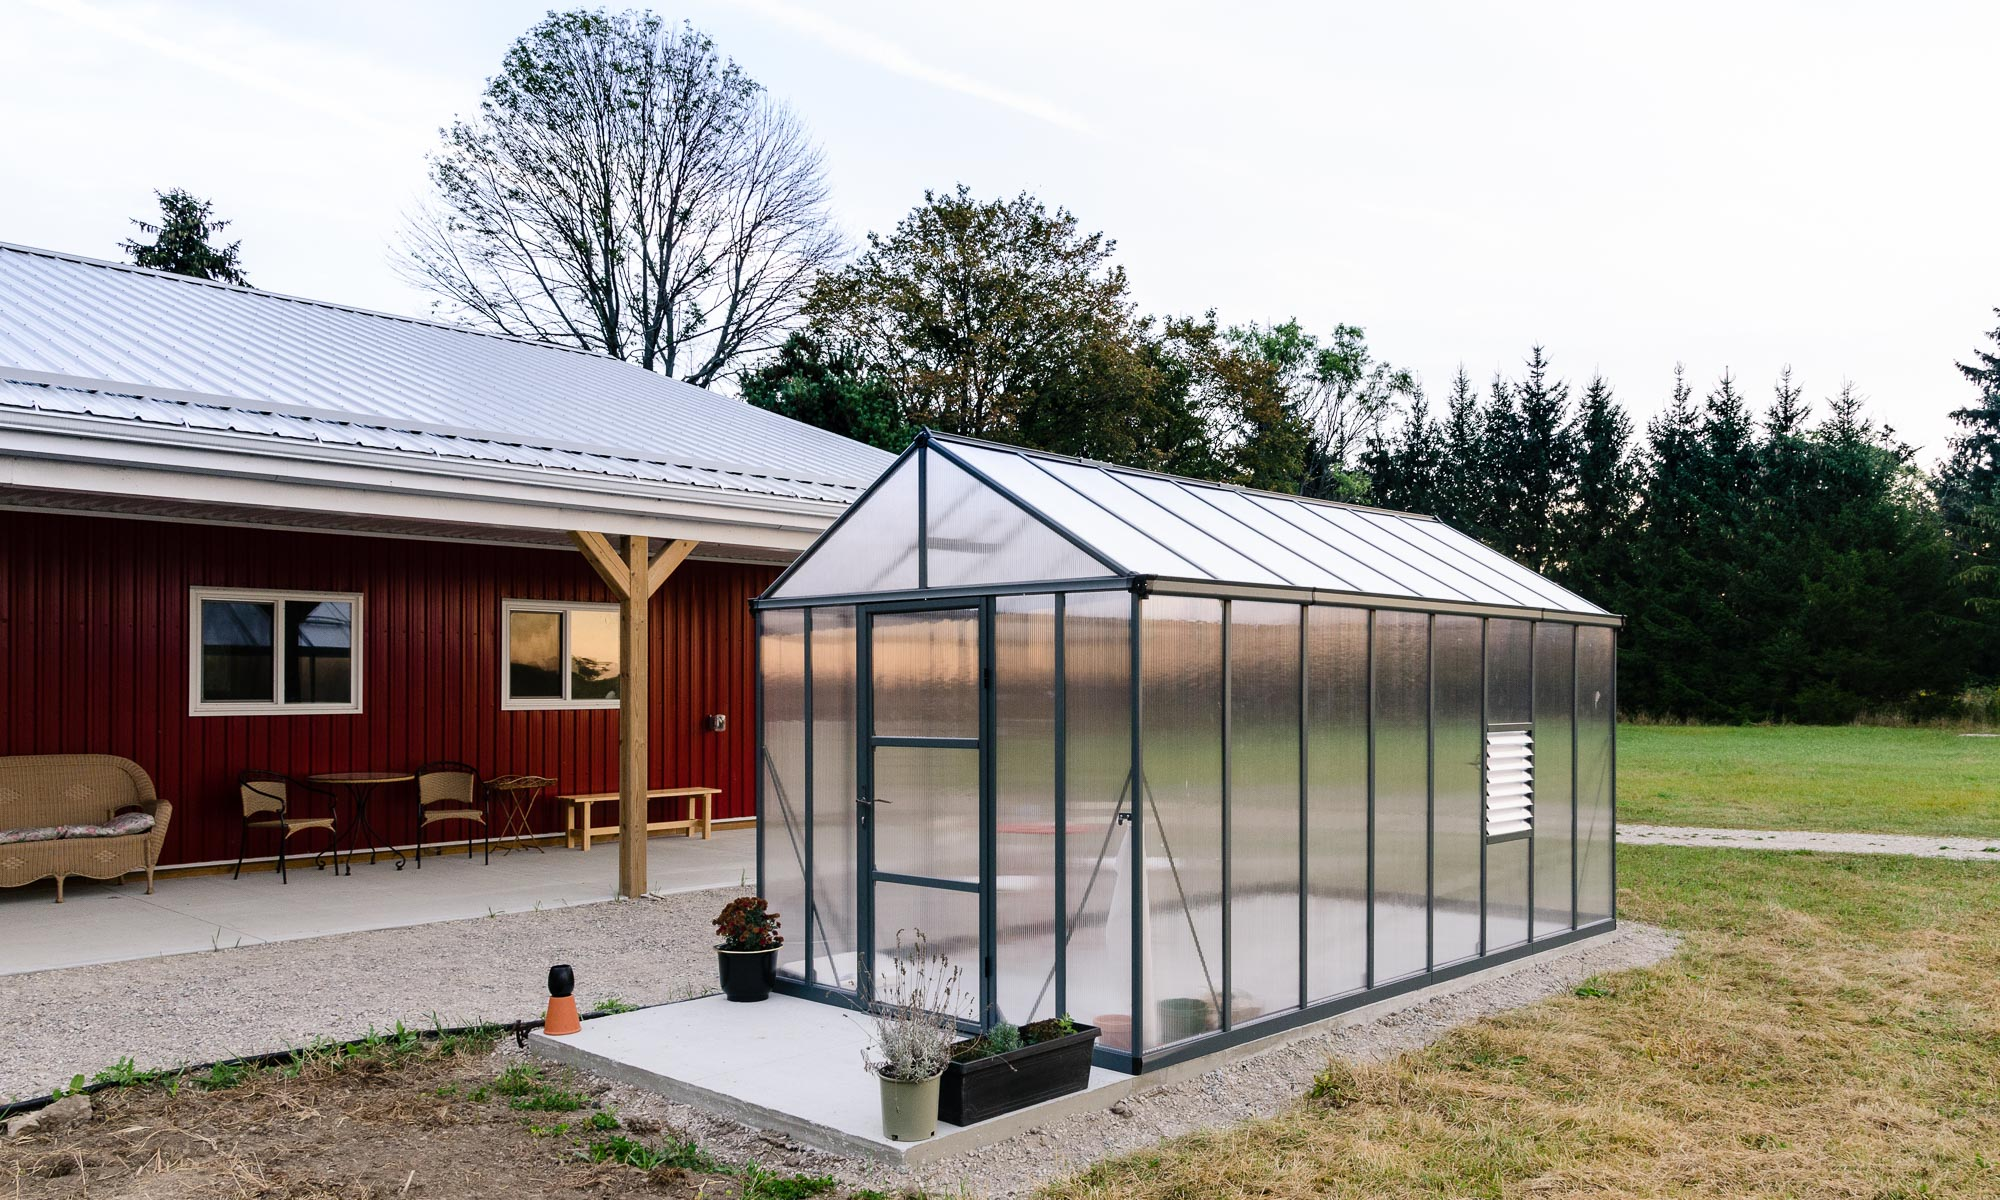 The New Palram Glory 8'x16' Greenhouse at White Tree Farm